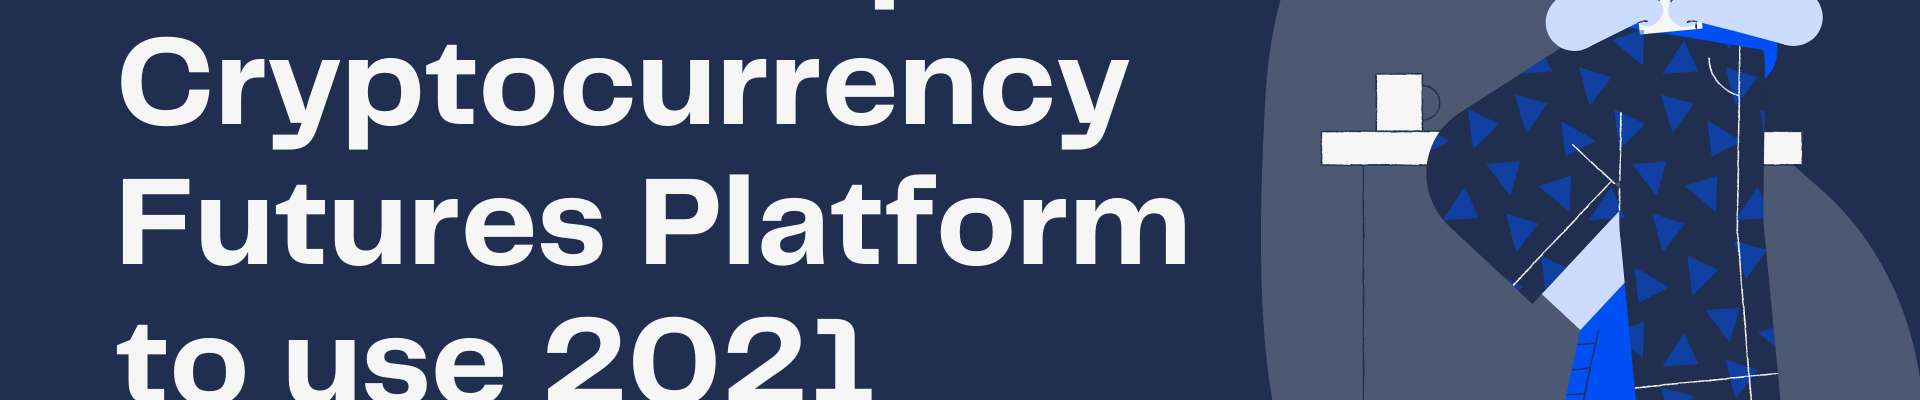 Best Cryptocurrency futures platforms for instant profits bitcoin